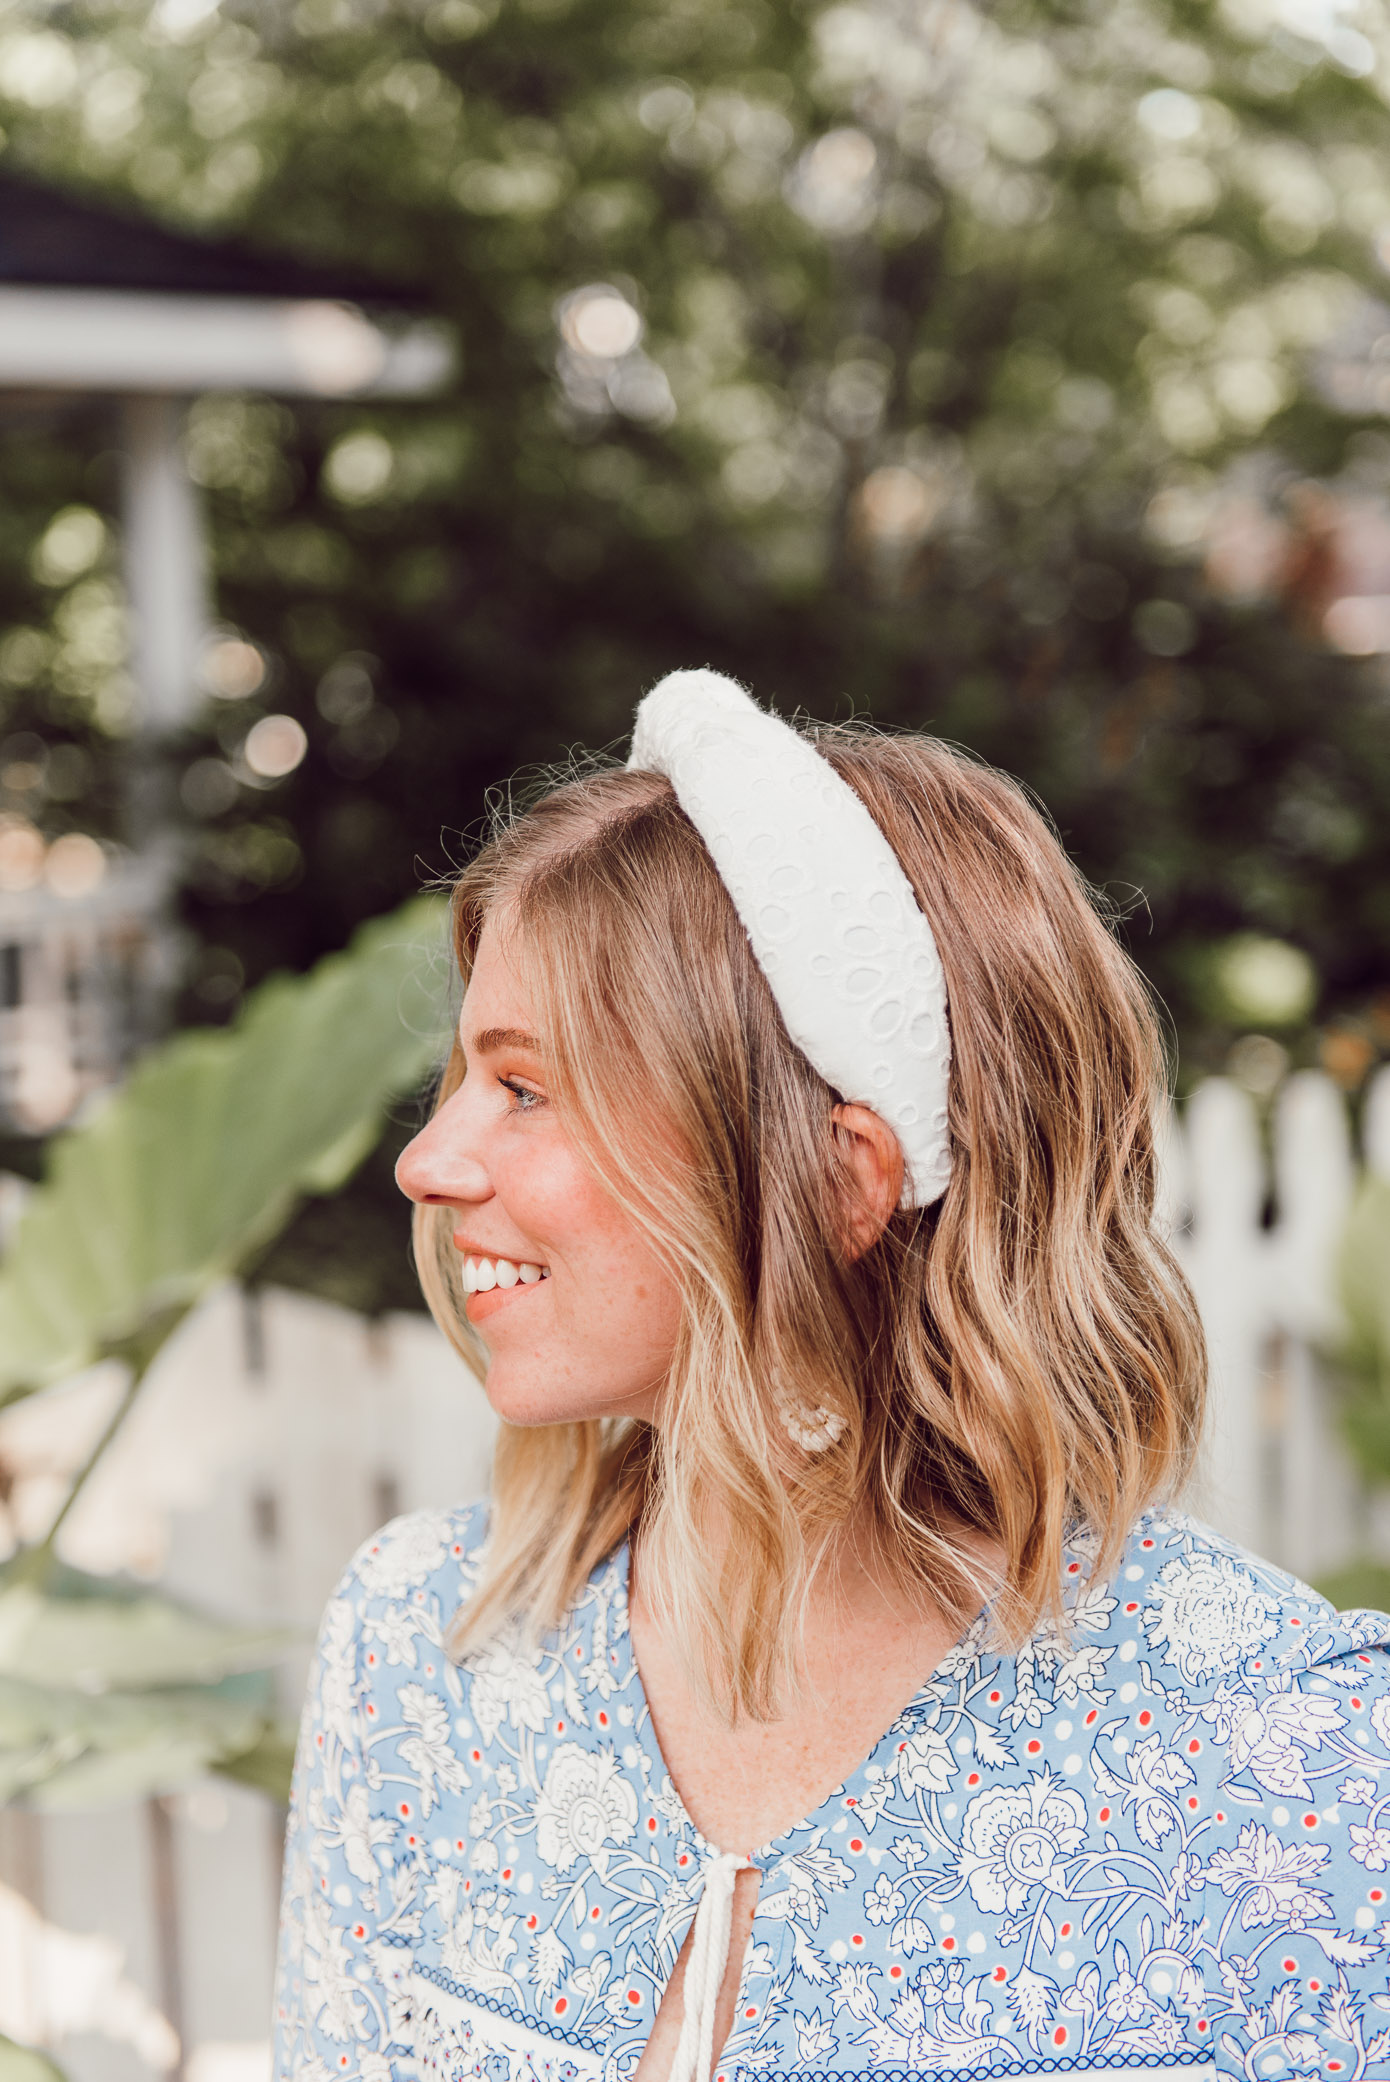 White Eyelet Headband, How to Style Lele Sadoughi Headbands | Louella Reese